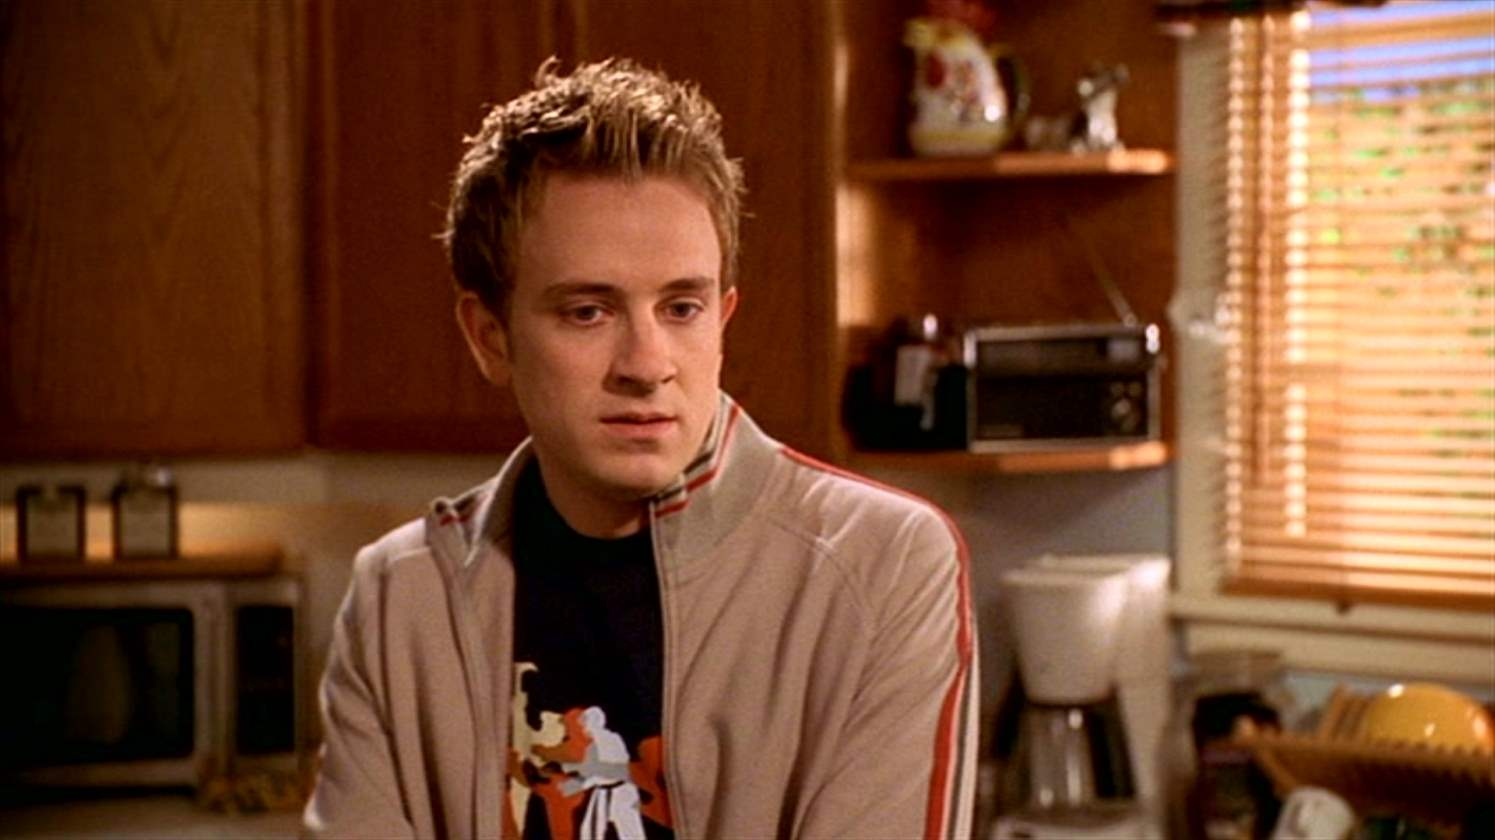 Tom Lenk as Andrew Wells on Buffy